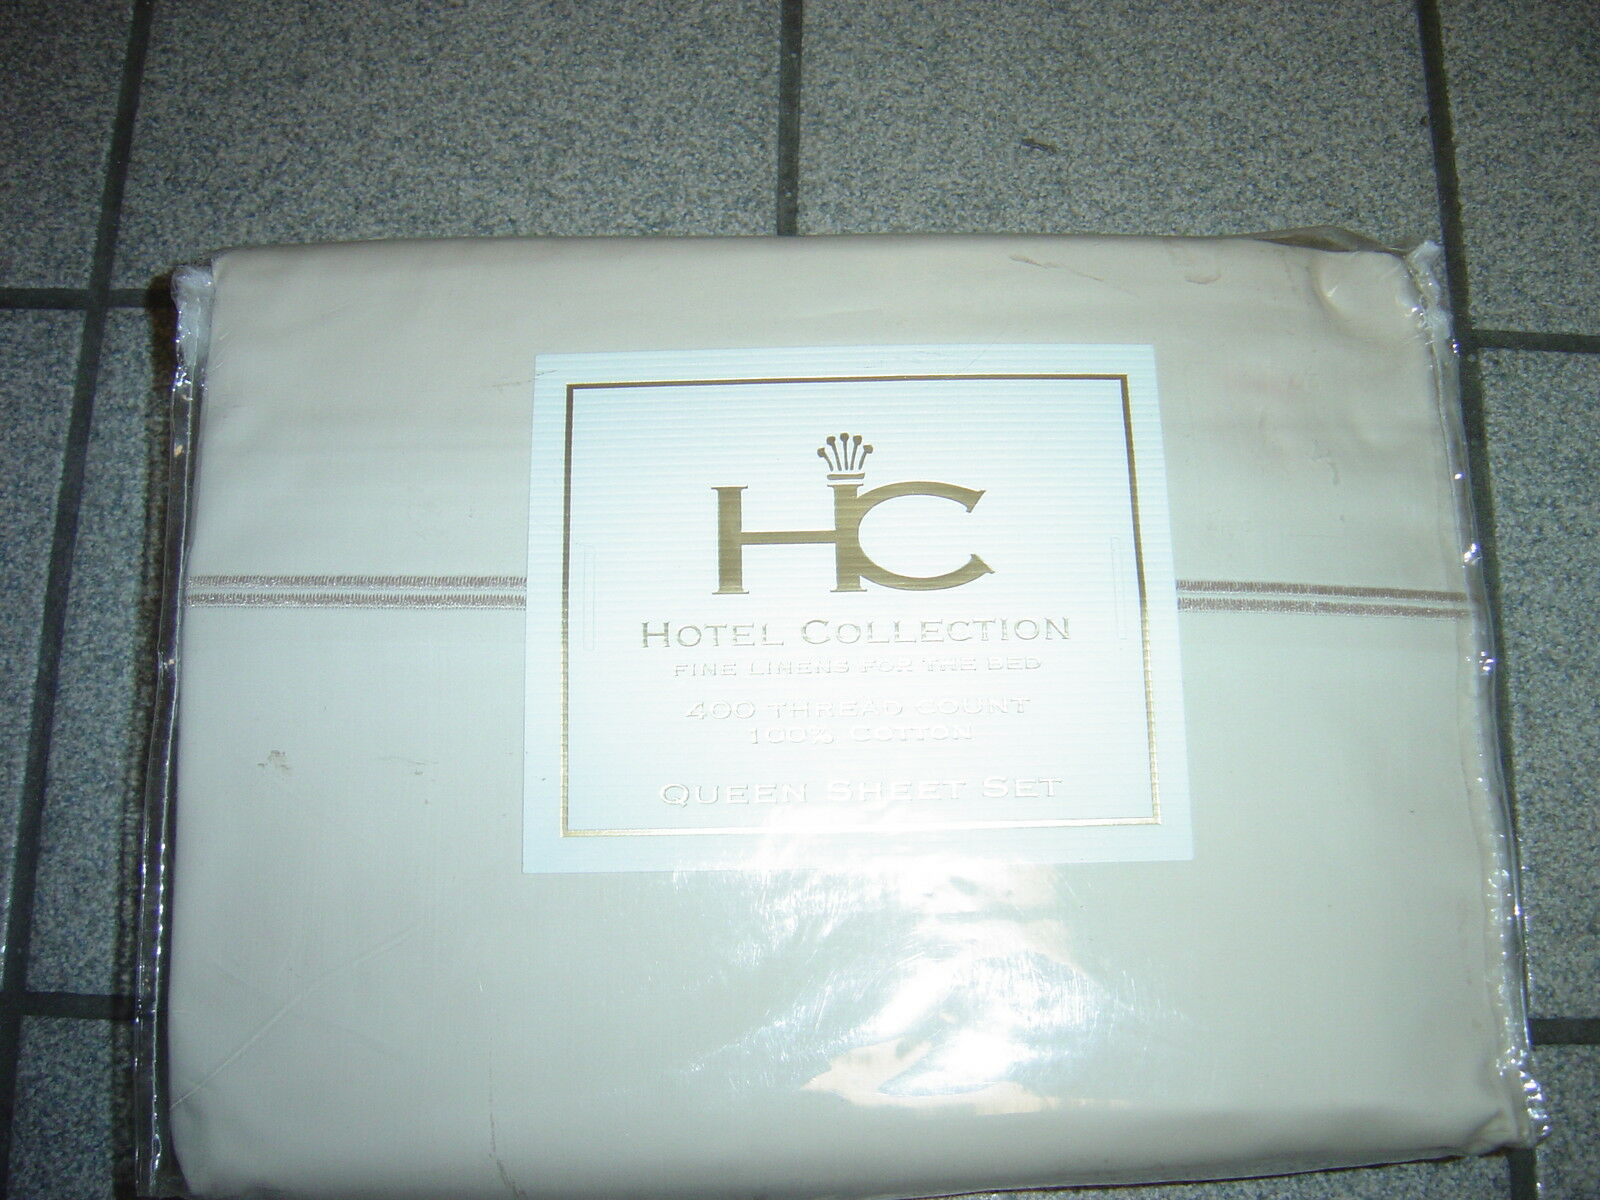 NEW QUEEN BEIGE BEIGE TRIM  HOTEL  COTTON SHEETS 400TC